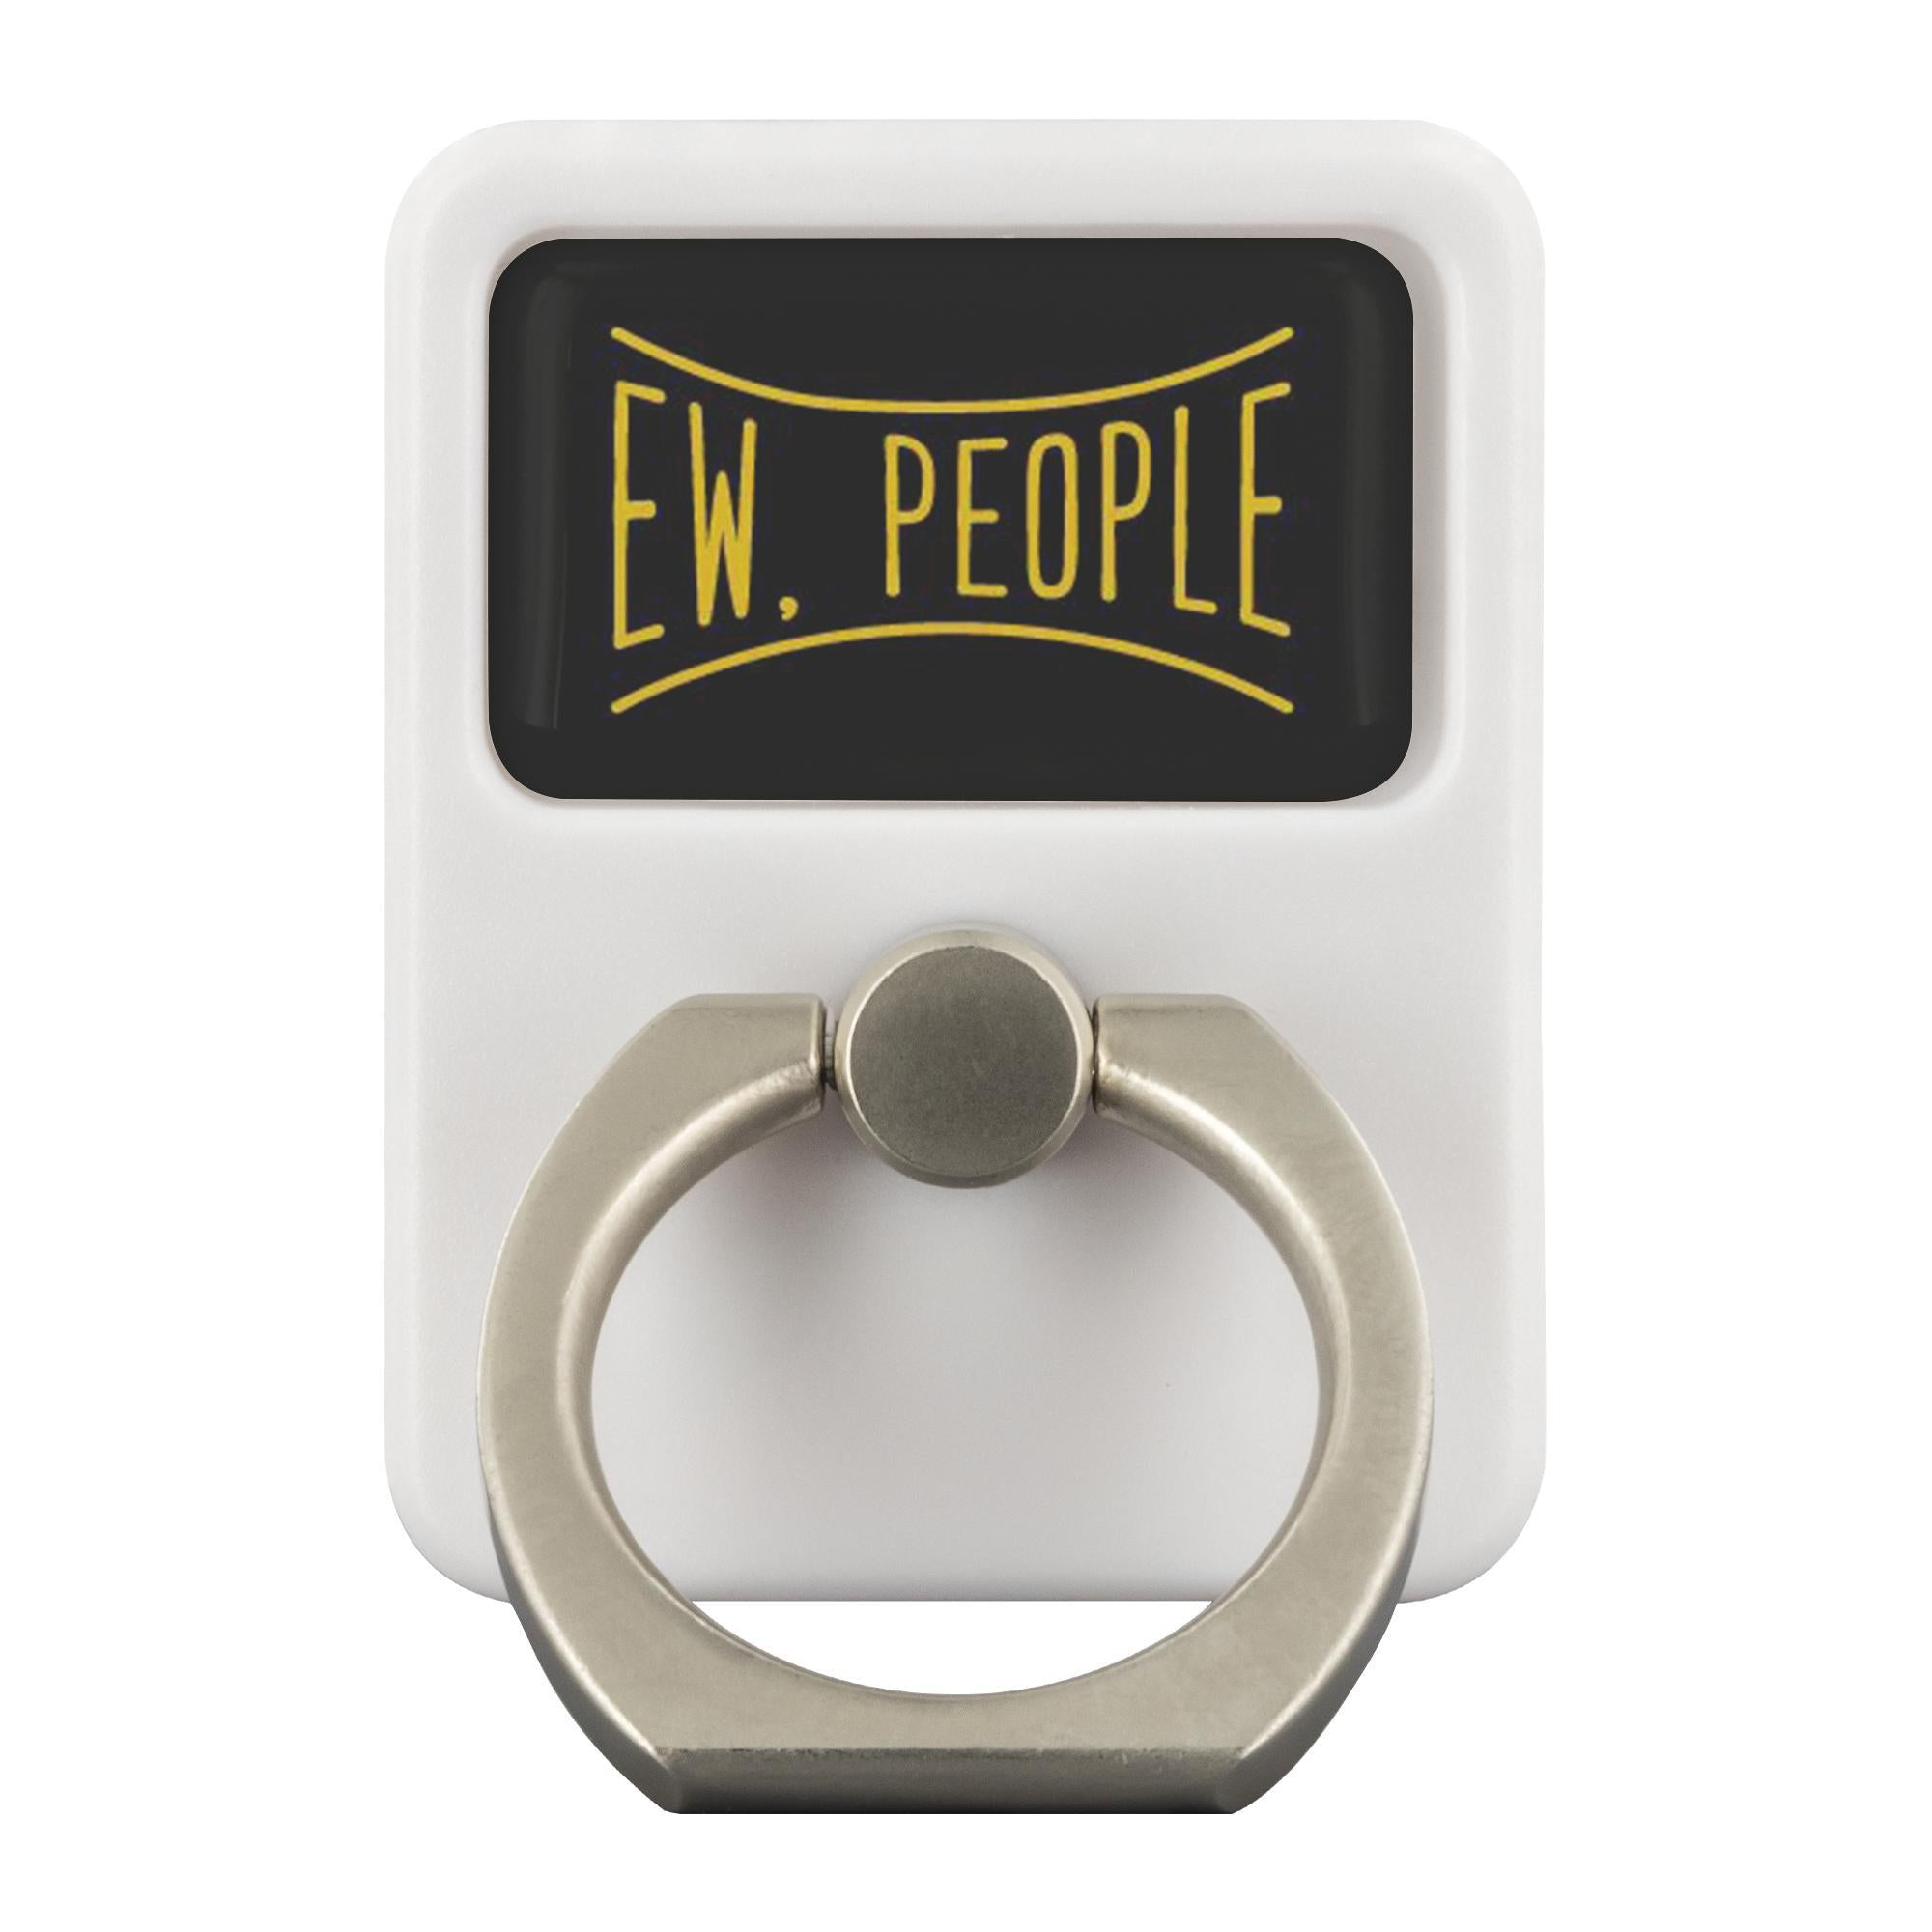 Ew People Funny Sarcasm Sarcastic Phone Ring Holder Cynical Kickstand Gift Ideas-Ringr - Multi-Tool Accessory-Ringr - Multi-Tool Accessory-JoyHip.Com